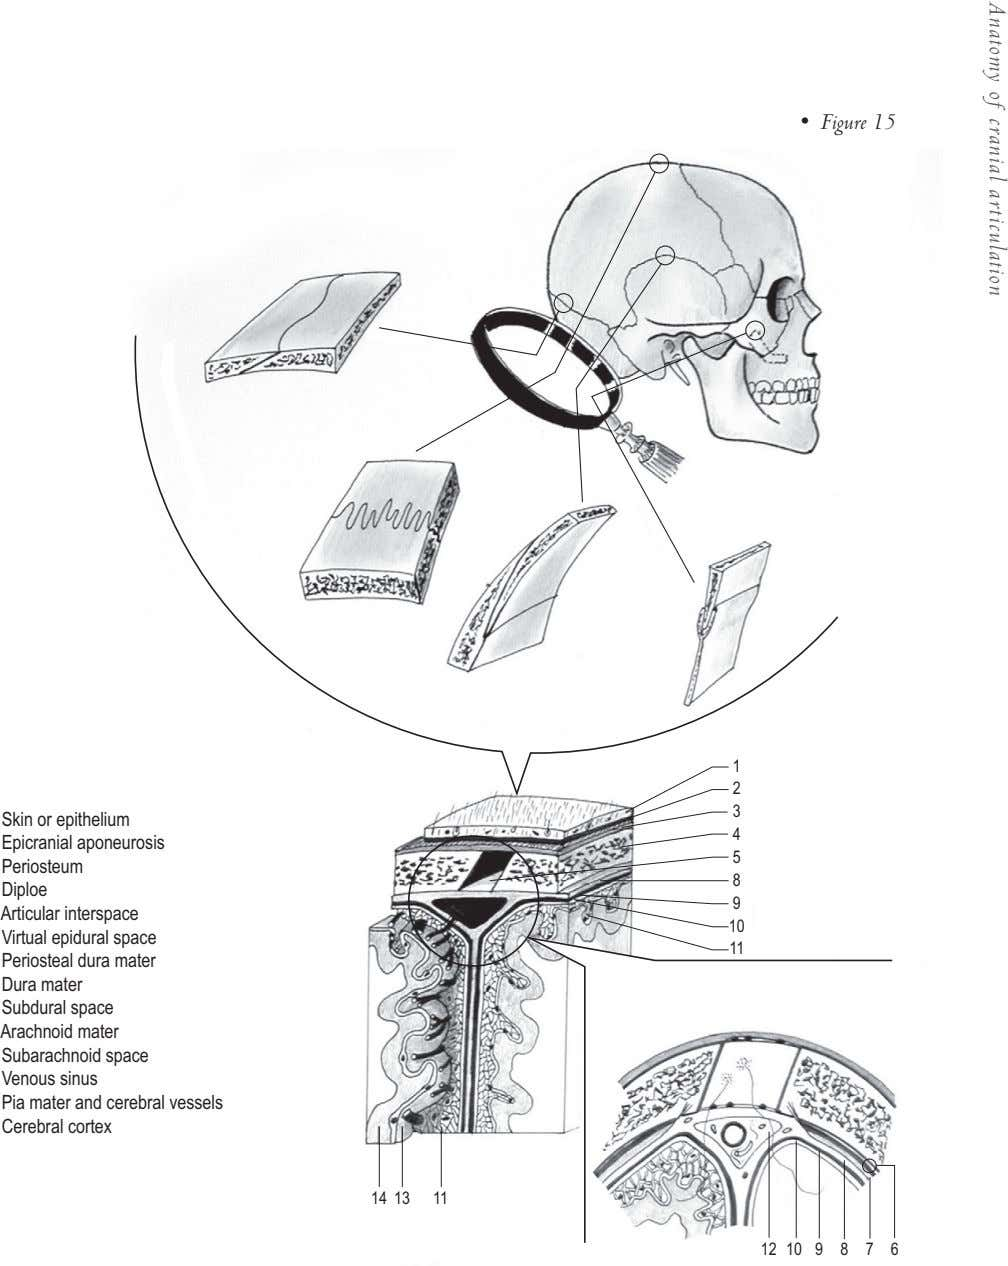 • Figure 15 Anatomy of cranial articulation 1 2 3 Skin or epithelium 4 Epicranial